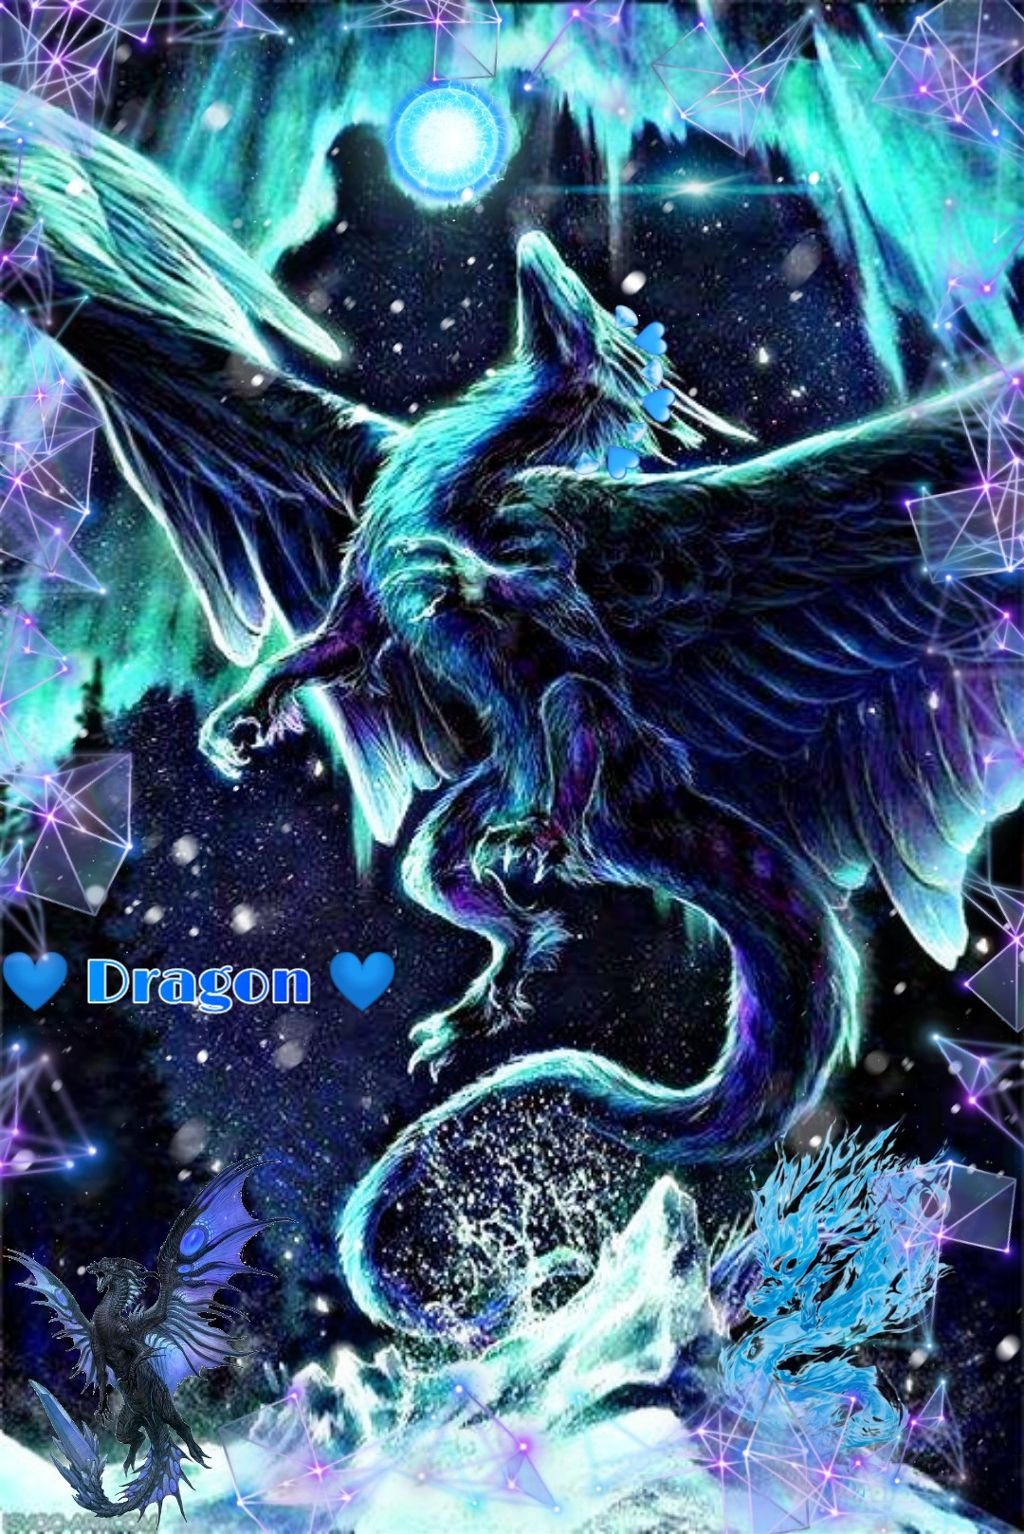 #freetoedit #dragon #water #blue #violet #heart